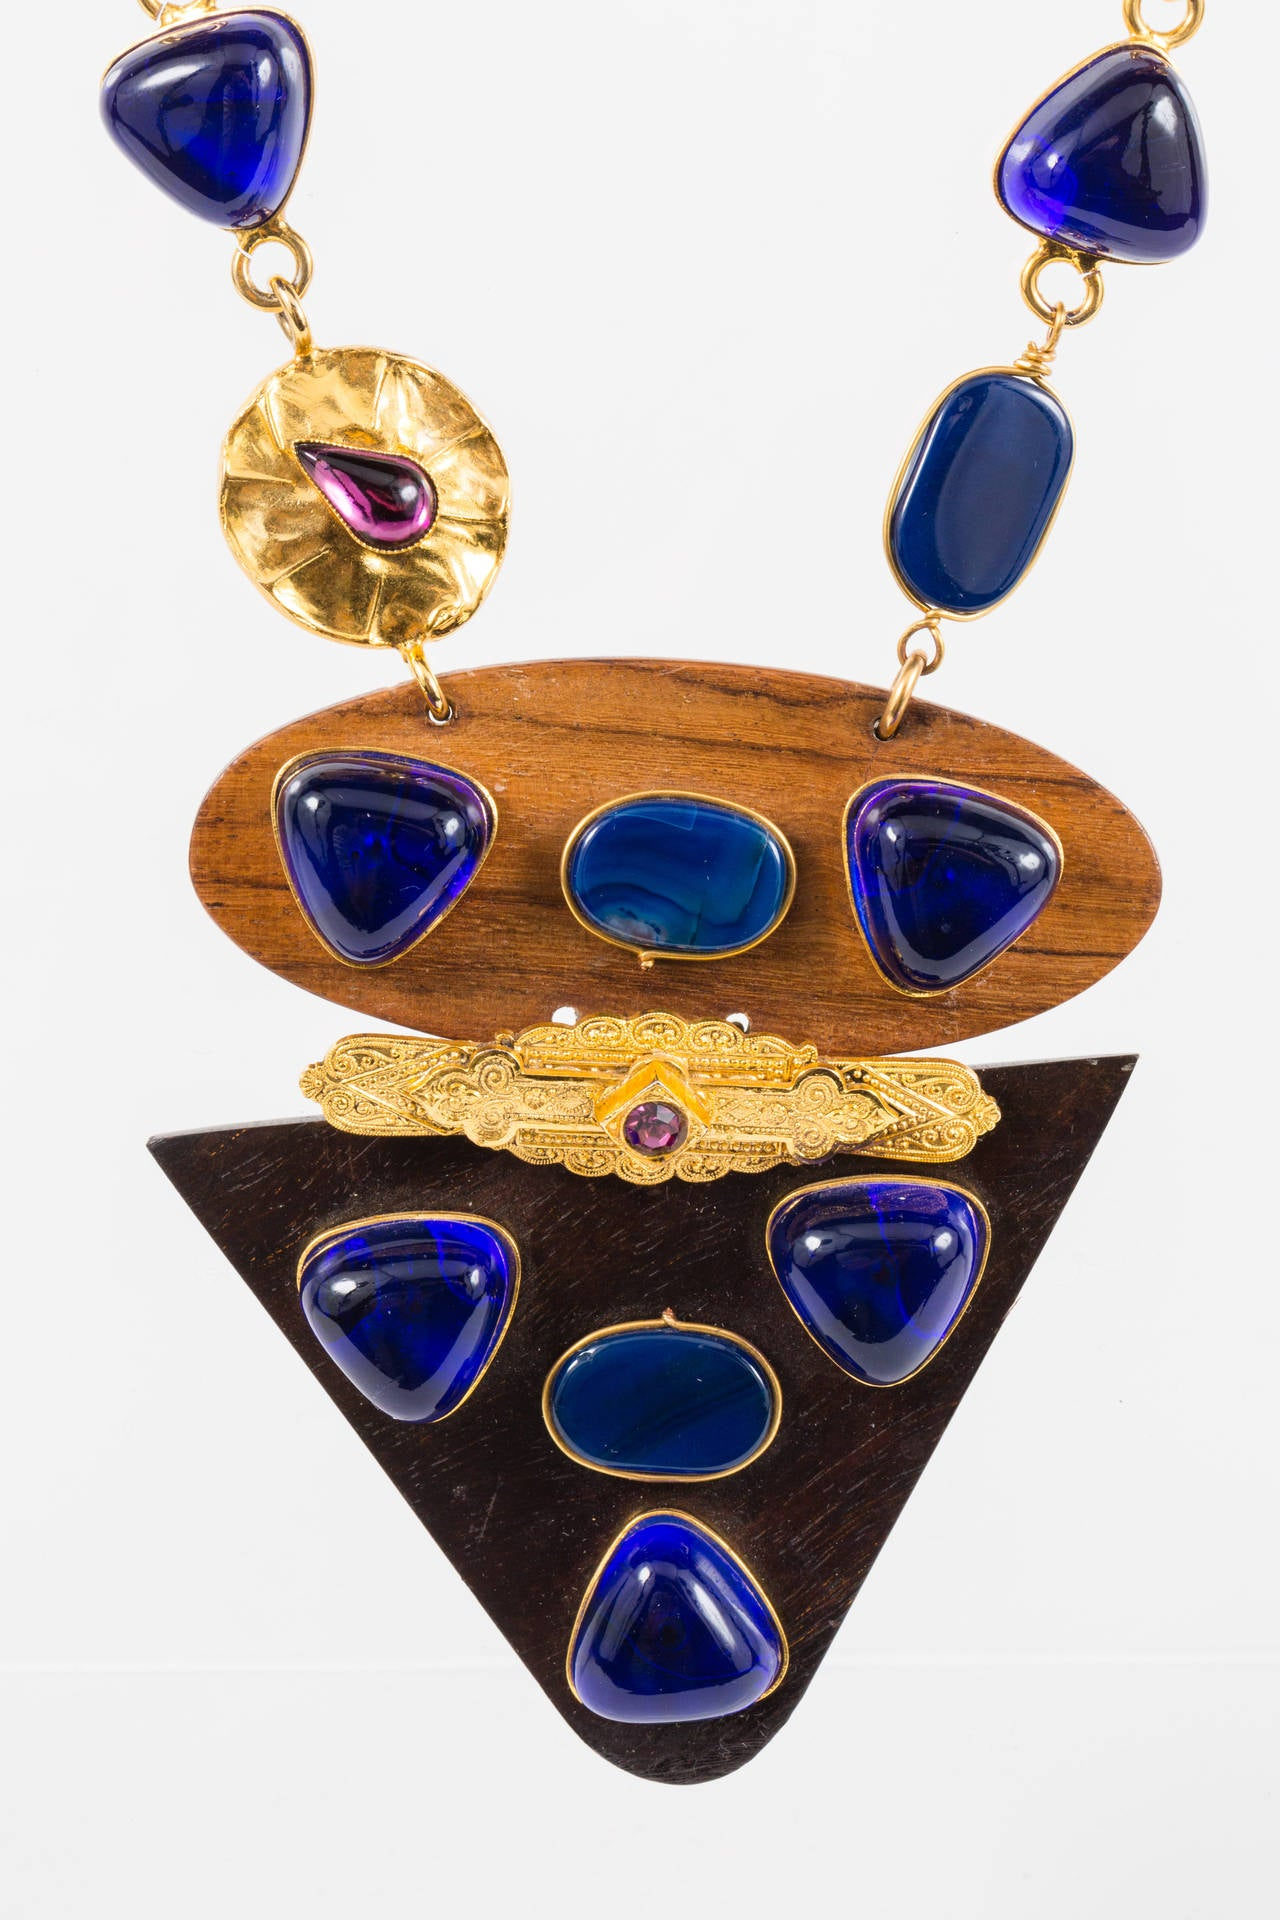 Exceptionally strong piece, this necklace is made of an interesting mix of materials and has the YSL logo plaque on the back clasp. Two types of wood compose the front pendants, which are accentuated by cobalt blue poured glass stones through out.